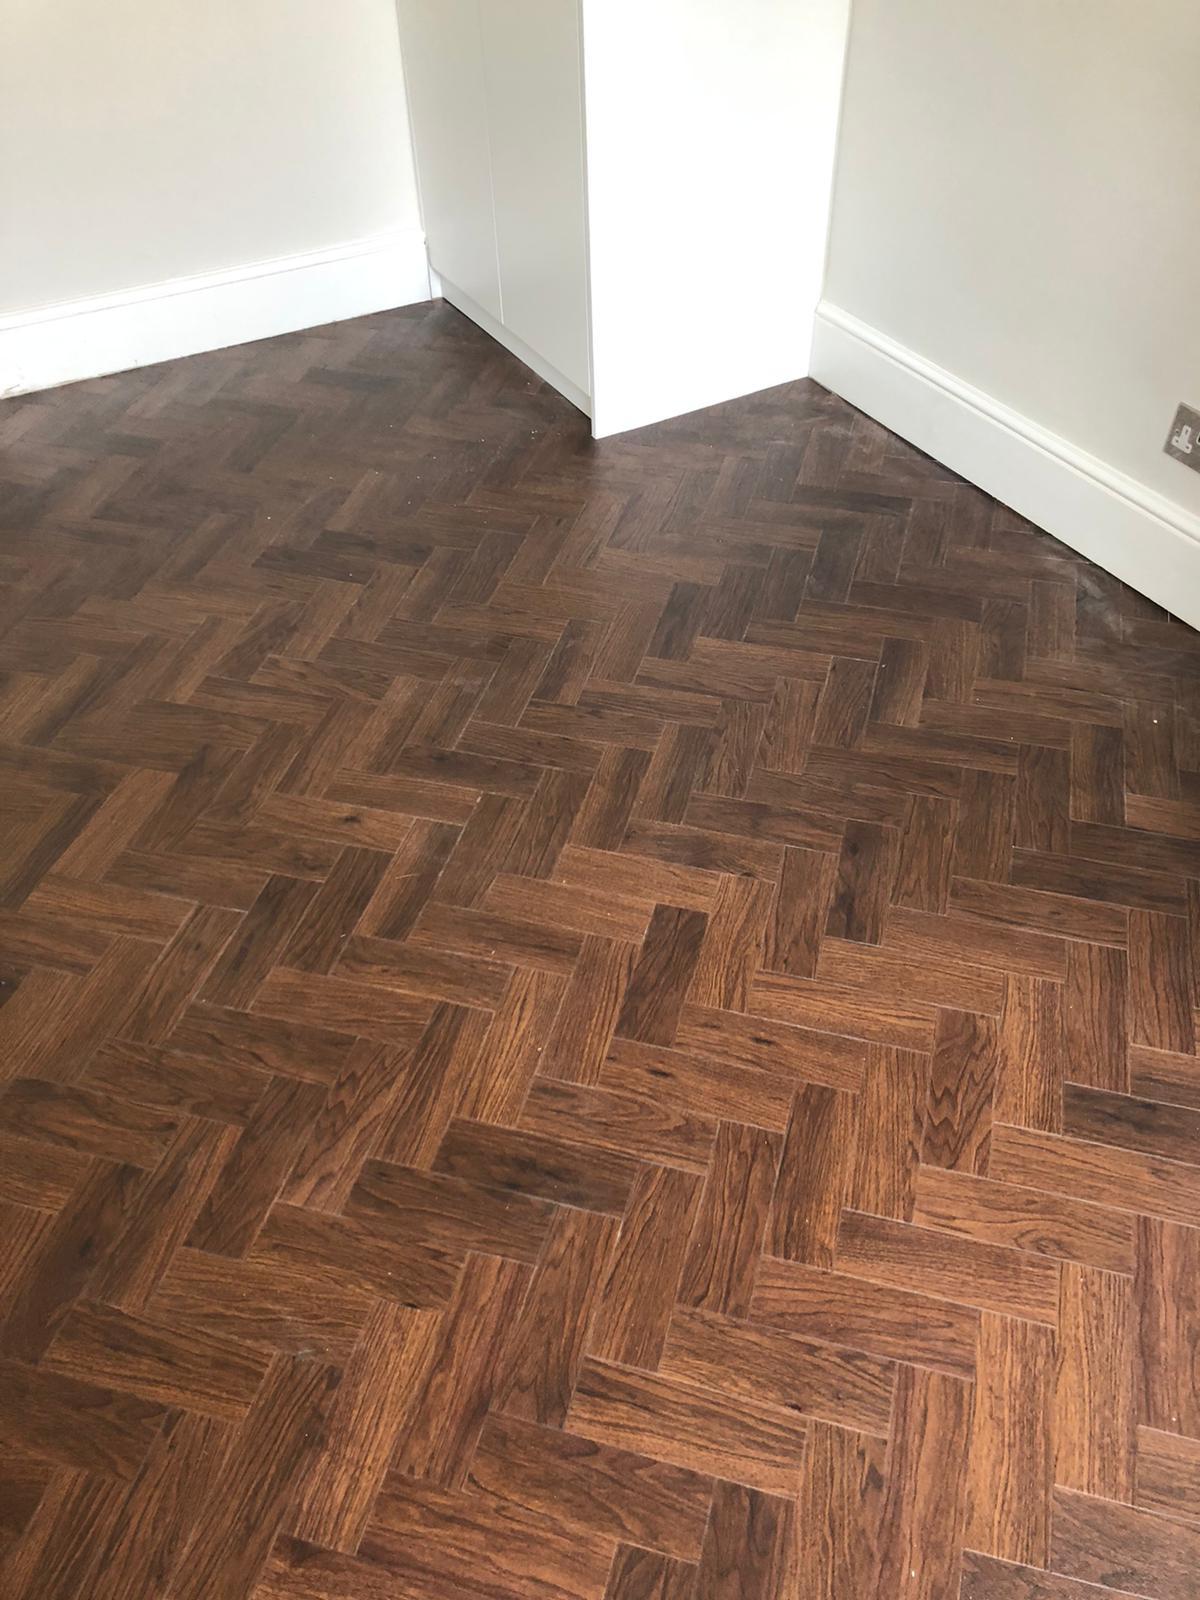 Amtico Black Walnut Luxury Vinyl Tile in Wood Design 1